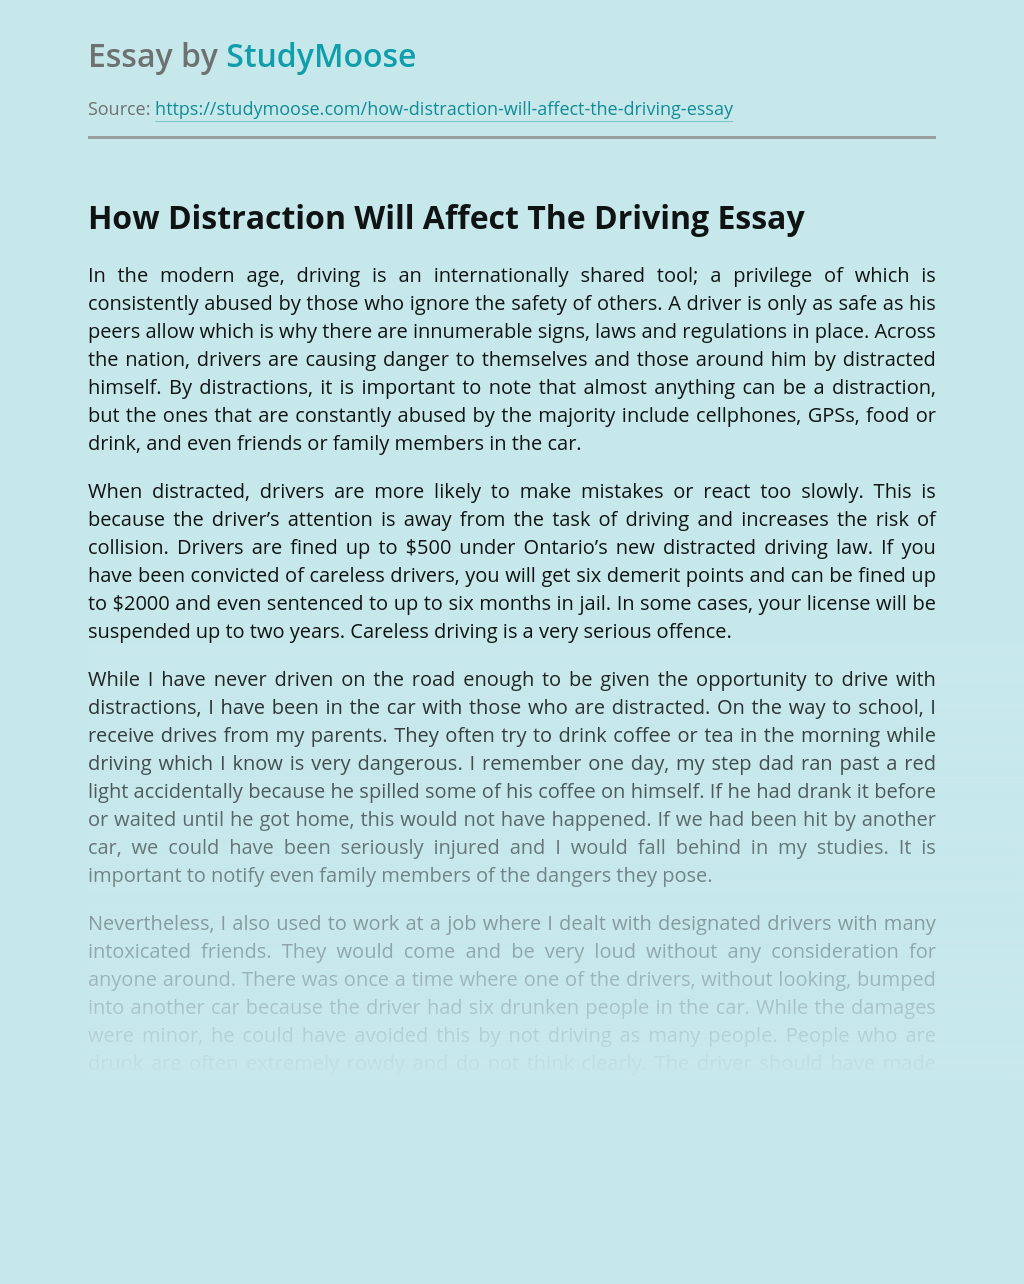 How Distraction Will Affect The Driving